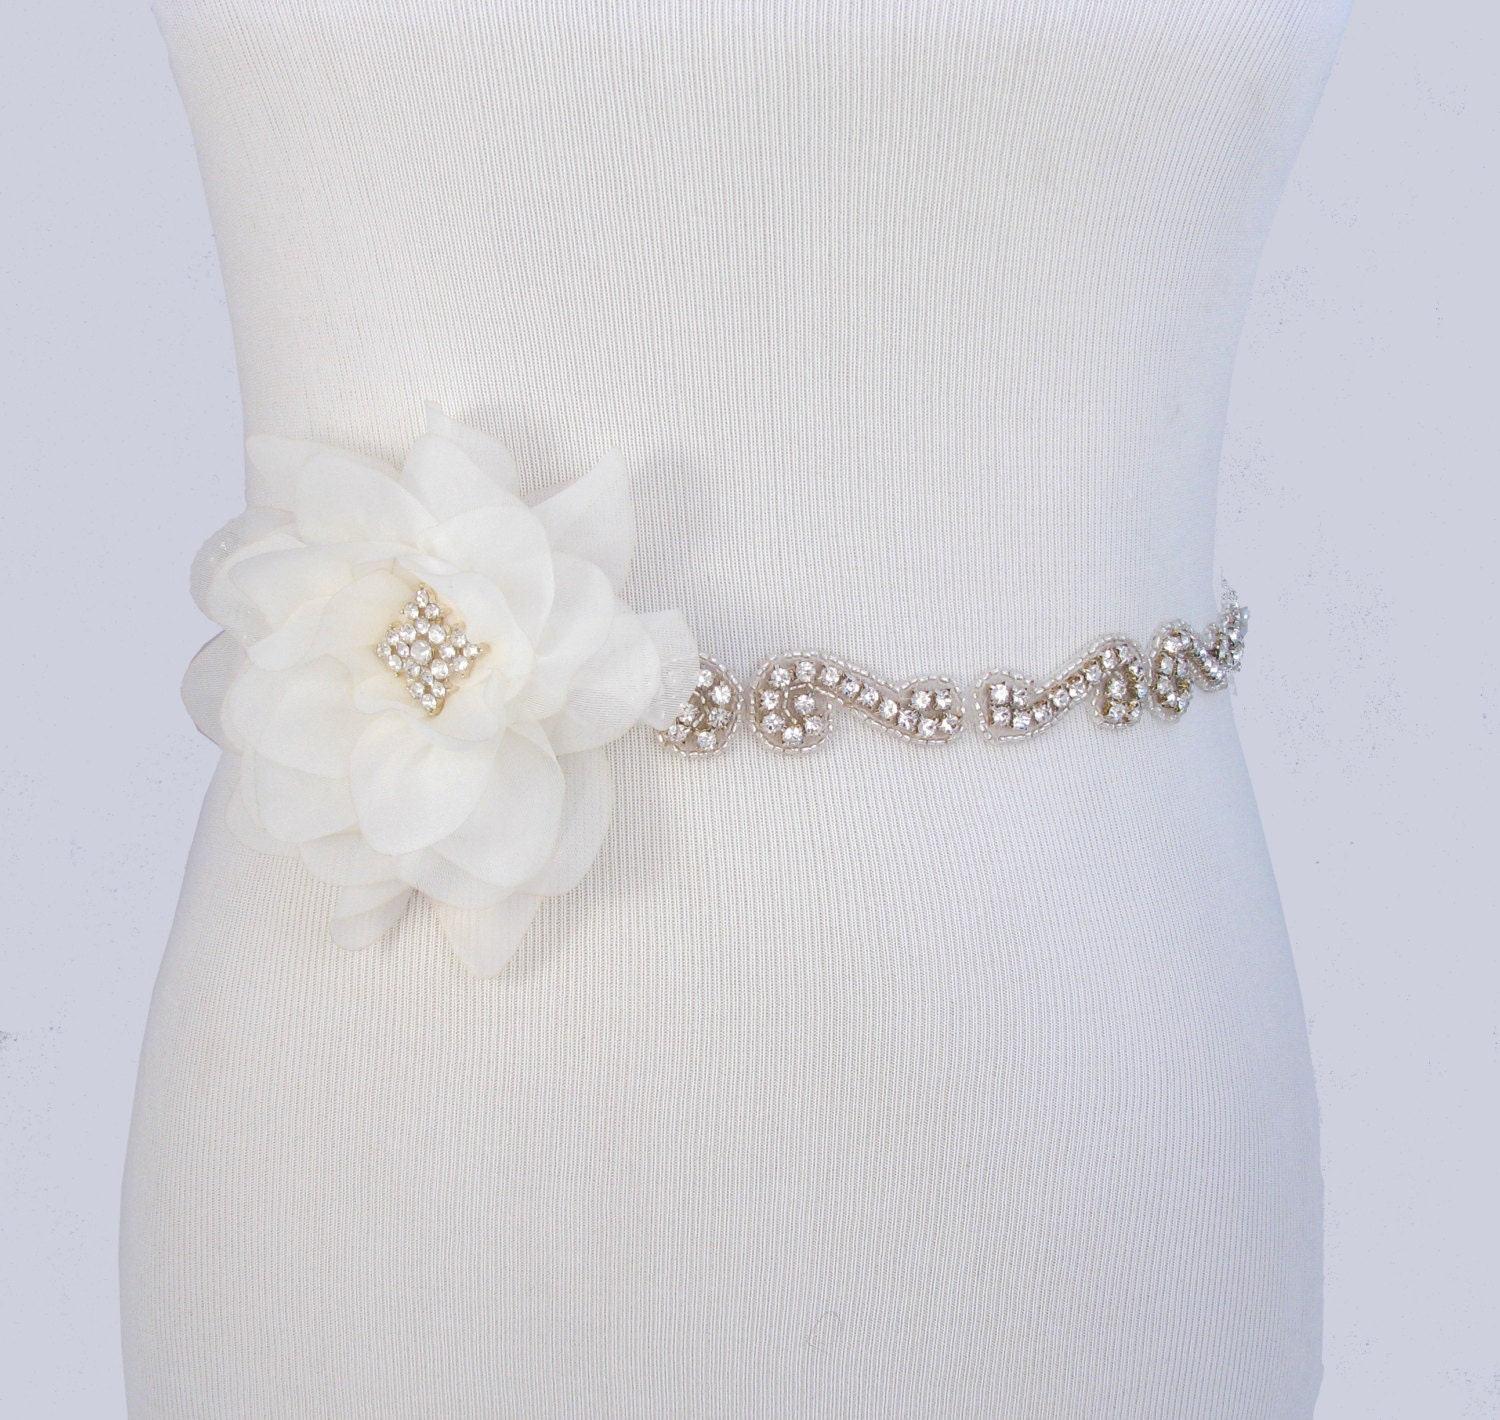 Flower wedding dress sash crystal rhinestone bridal belt for Rhinestone sash for wedding dress